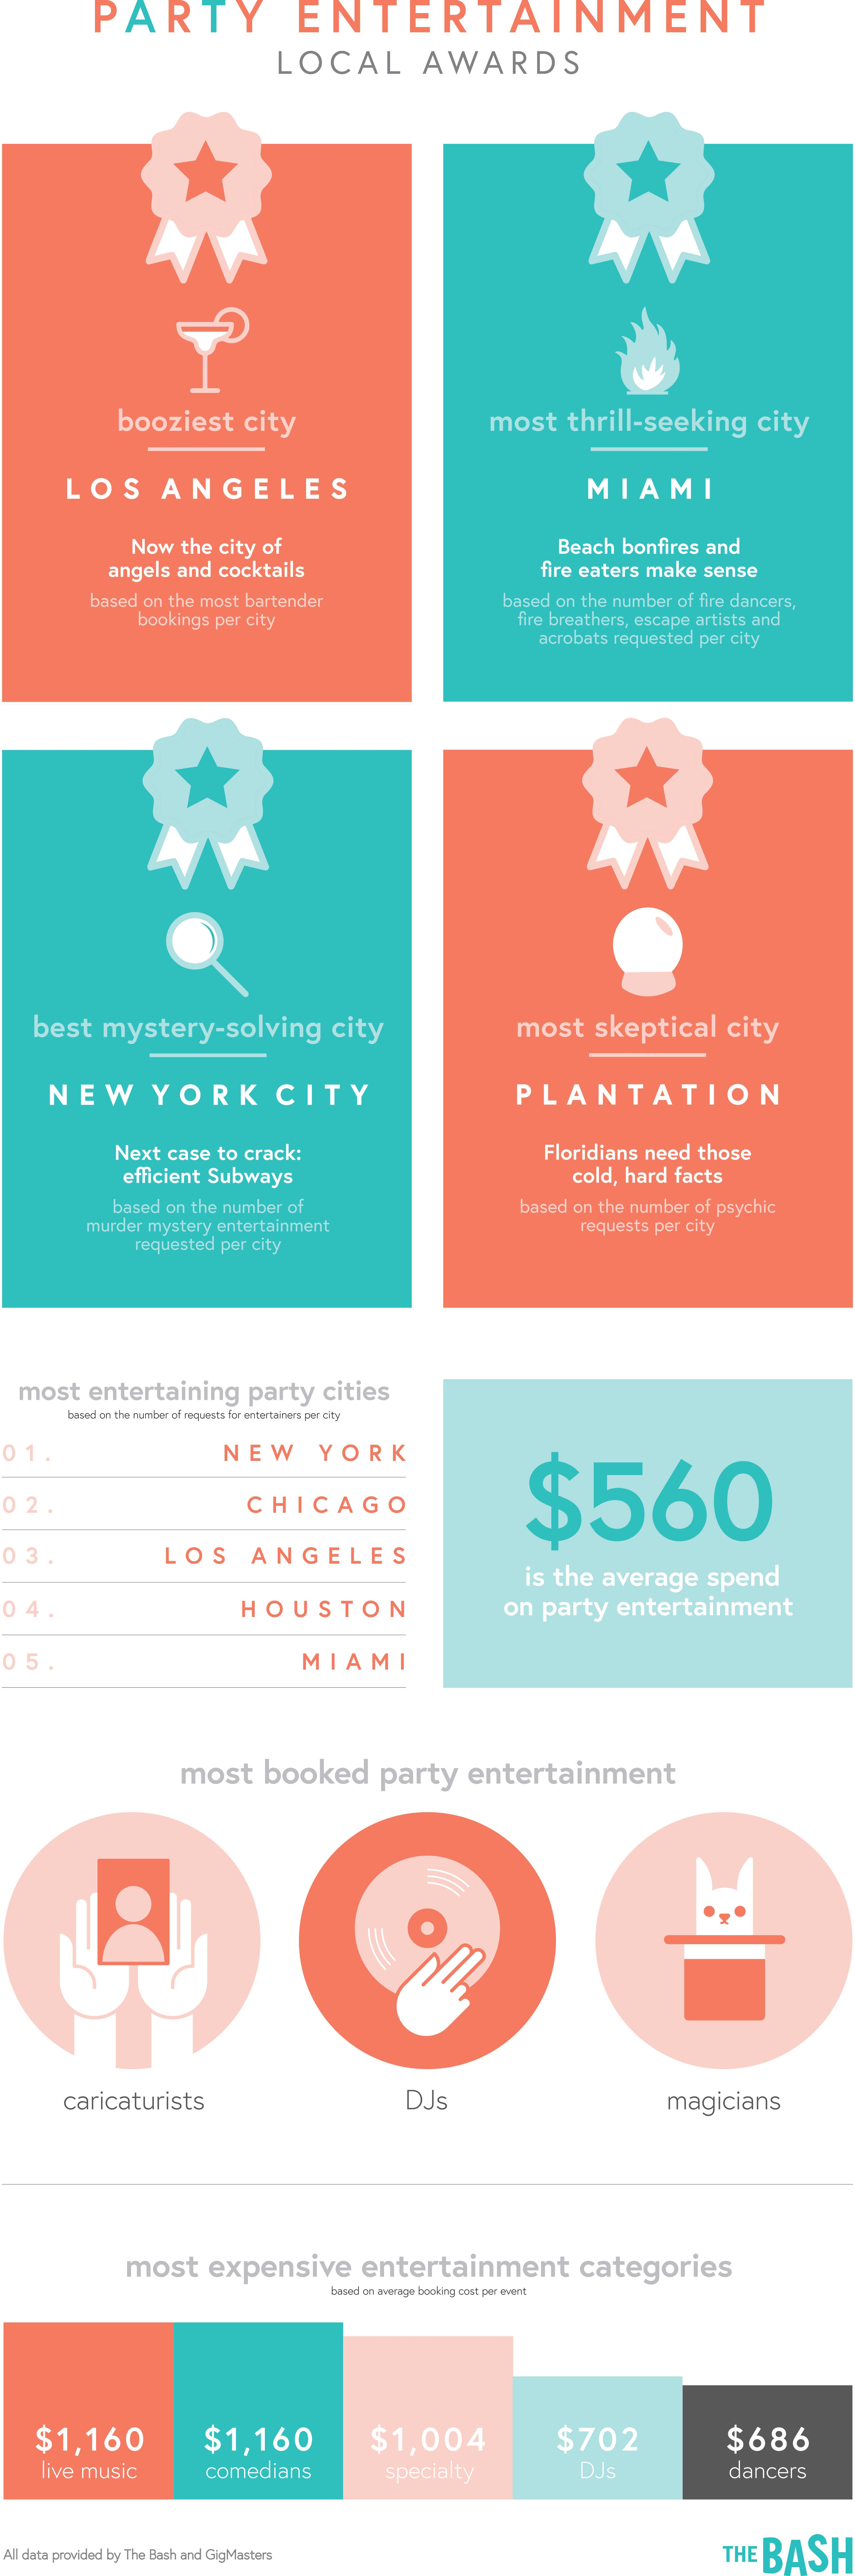 colorful infographic with party entertainment bookings per city